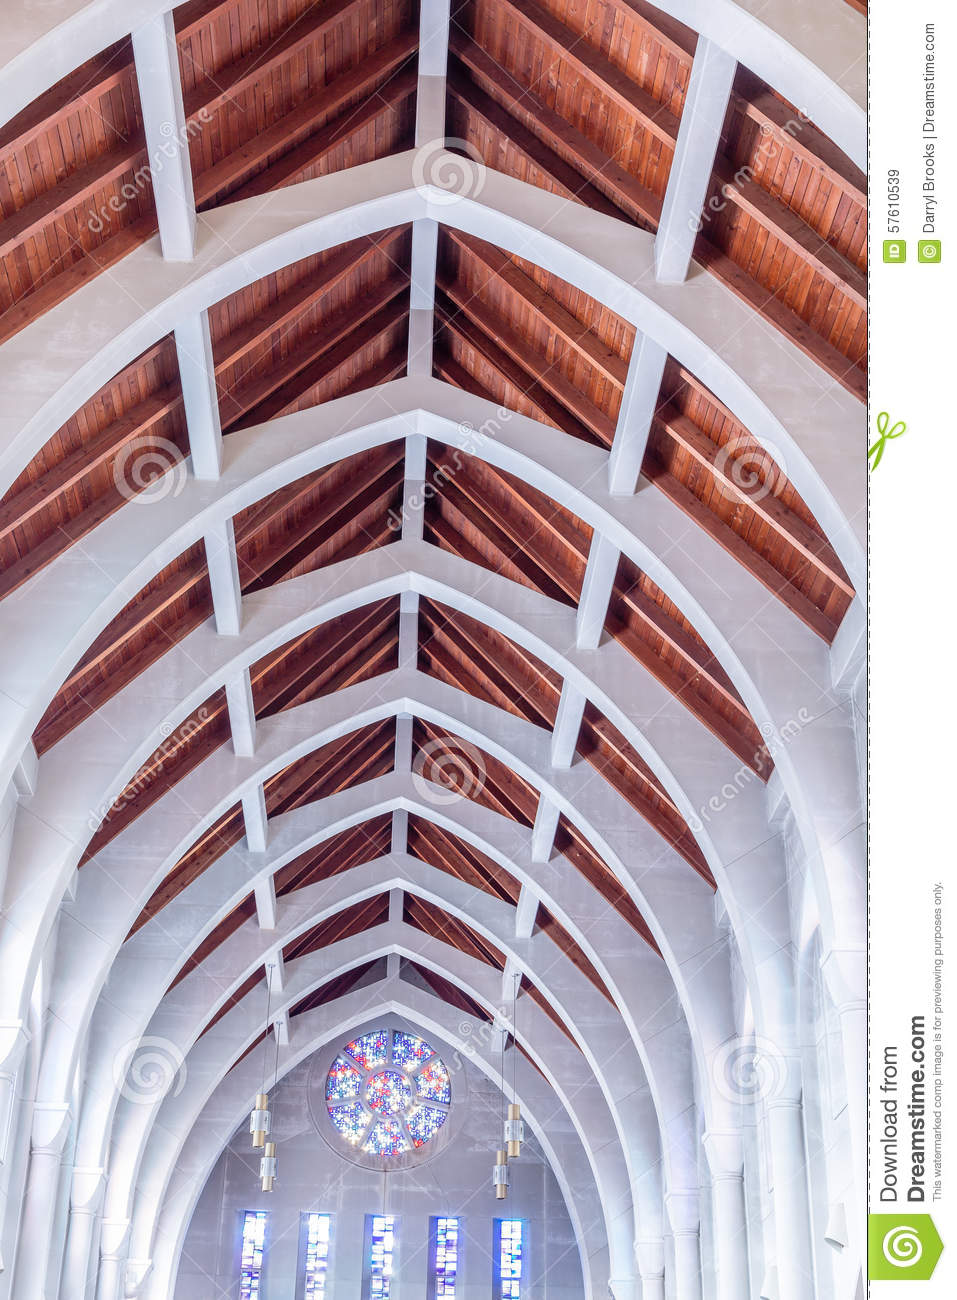 White arches and wood beams stock photo image 57610539 for Arched ceiling beams